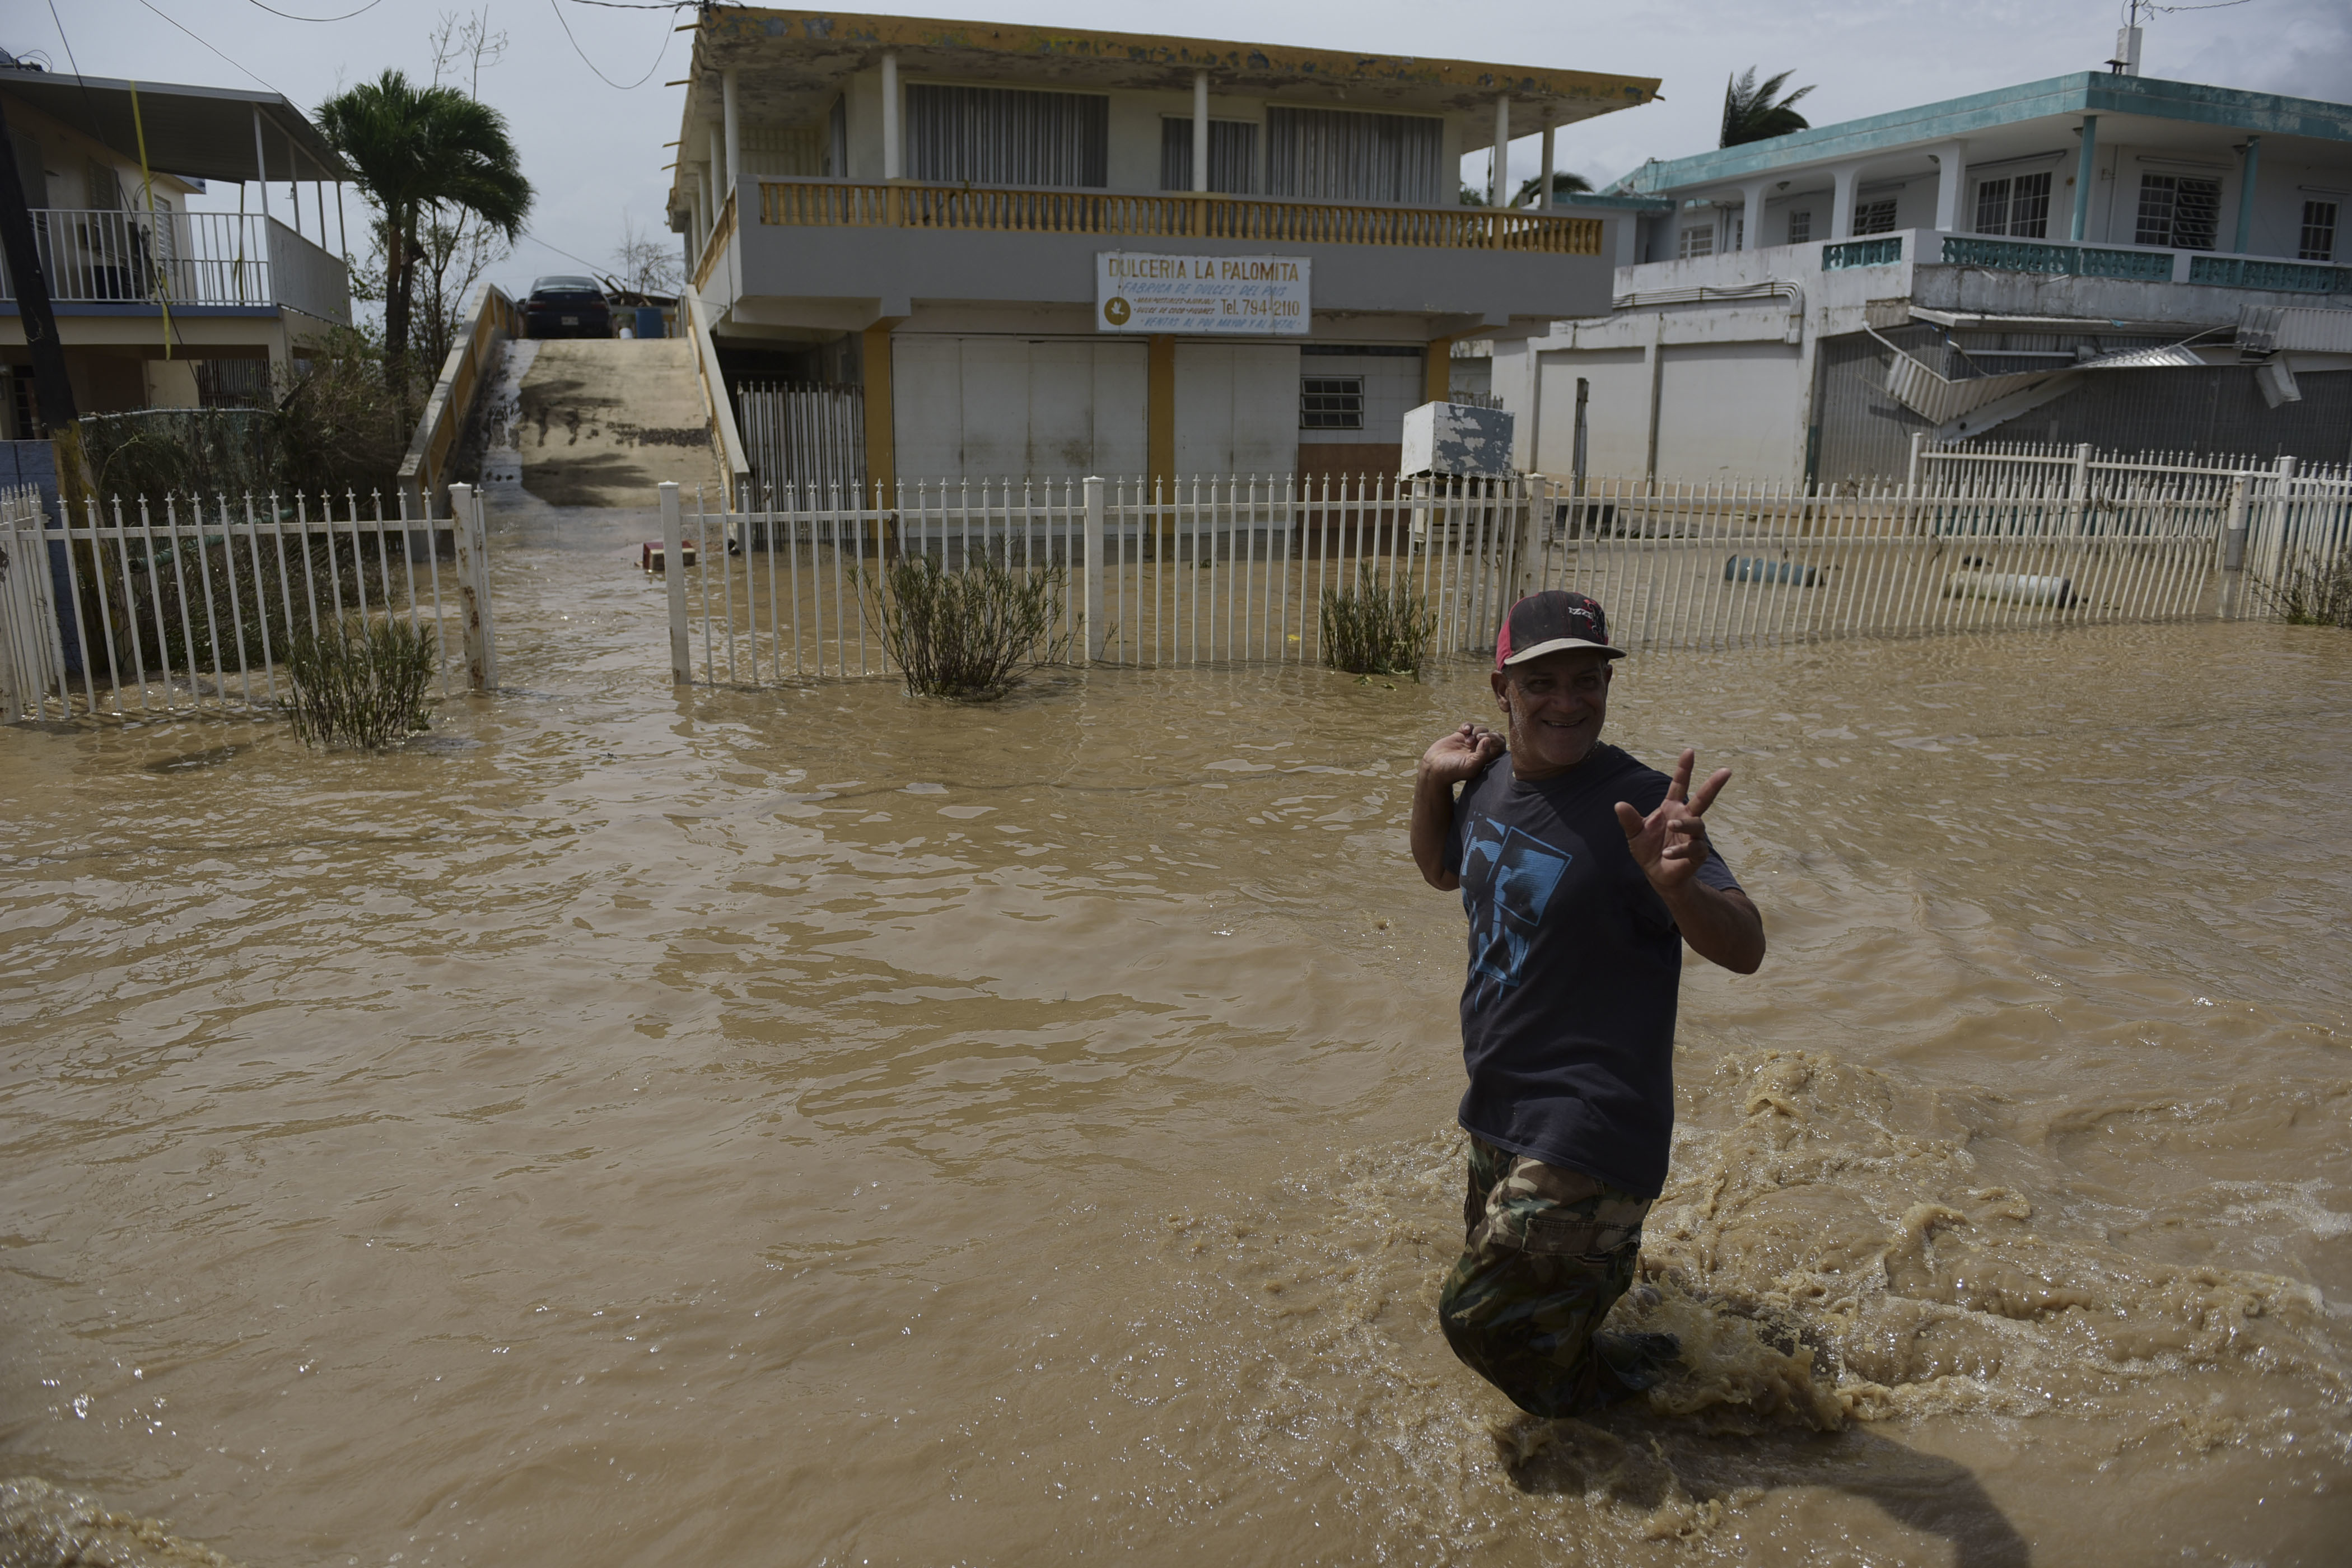 A resident wades through a flooded road in the Toa Ville community two days after the impact of Hurricane Maria in Toa Baja, Puerto Rico, Friday, Sept. 22, 2017. Because flooding, thousands of people are being evacuated from Toa Baja after the municipal government opened the gates of the Rio La Plata Dam. (AP Photo/Carlos Giusti)